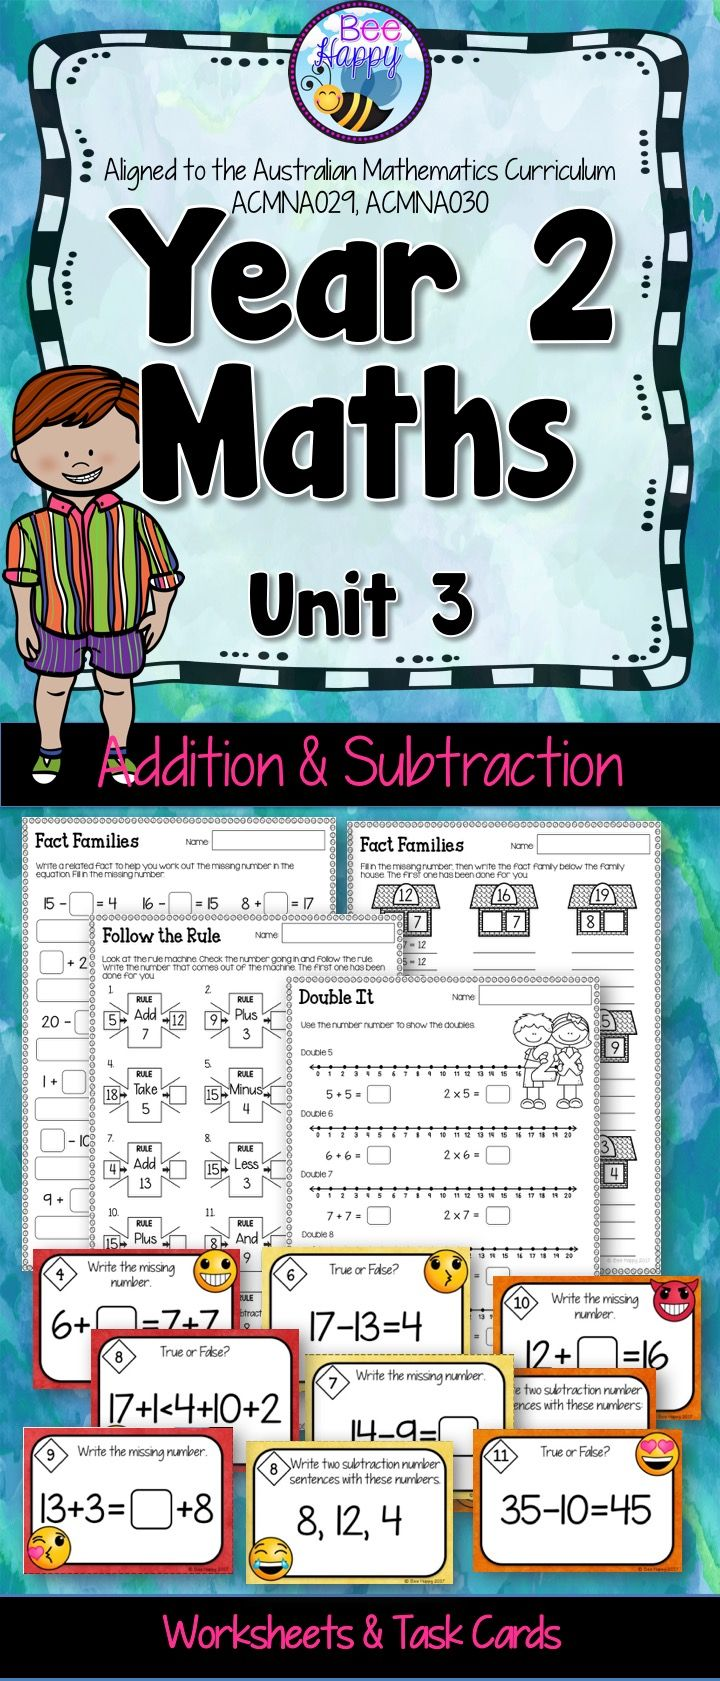 Worksheets And Task Cards For Addition And Subtraction Fact Families Adding 10 Basic Fa Australian Curriculum Task Cards Addition And Subtraction Worksheets